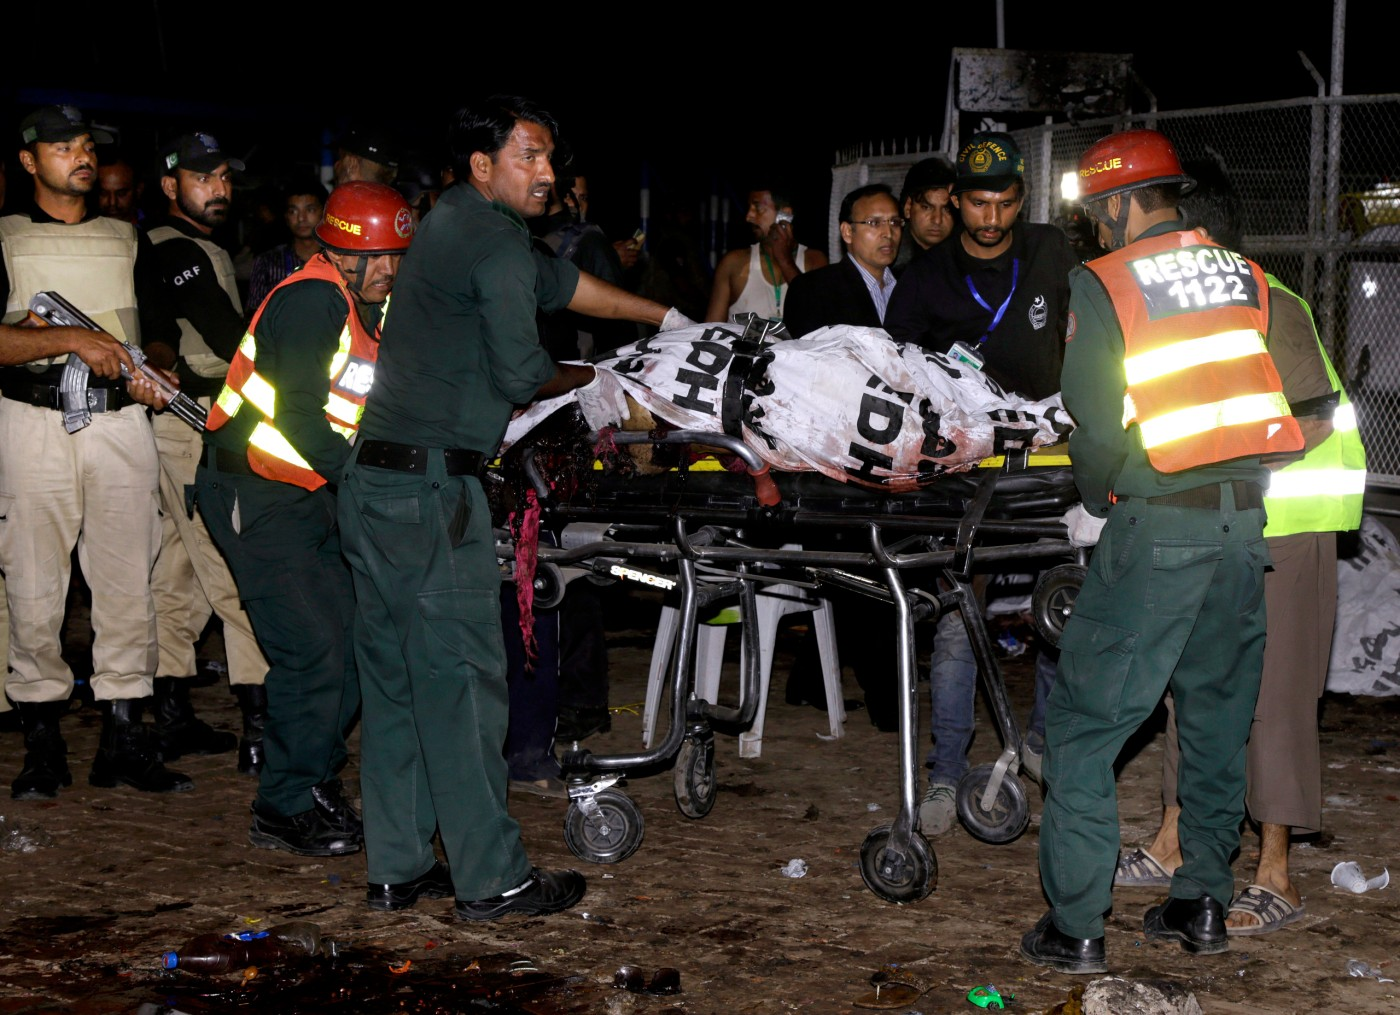 Pakistani rescue workers remove a dead body from the site of bomb explosion in a park in Lahore, Pakistan, Sunday, March, 27, 2016. A bomb blast in a park in the eastern Pakistani city of Lahore has killed tens of people and wounded scores, a health official said. (AP Photo/K.M. Chuadary)